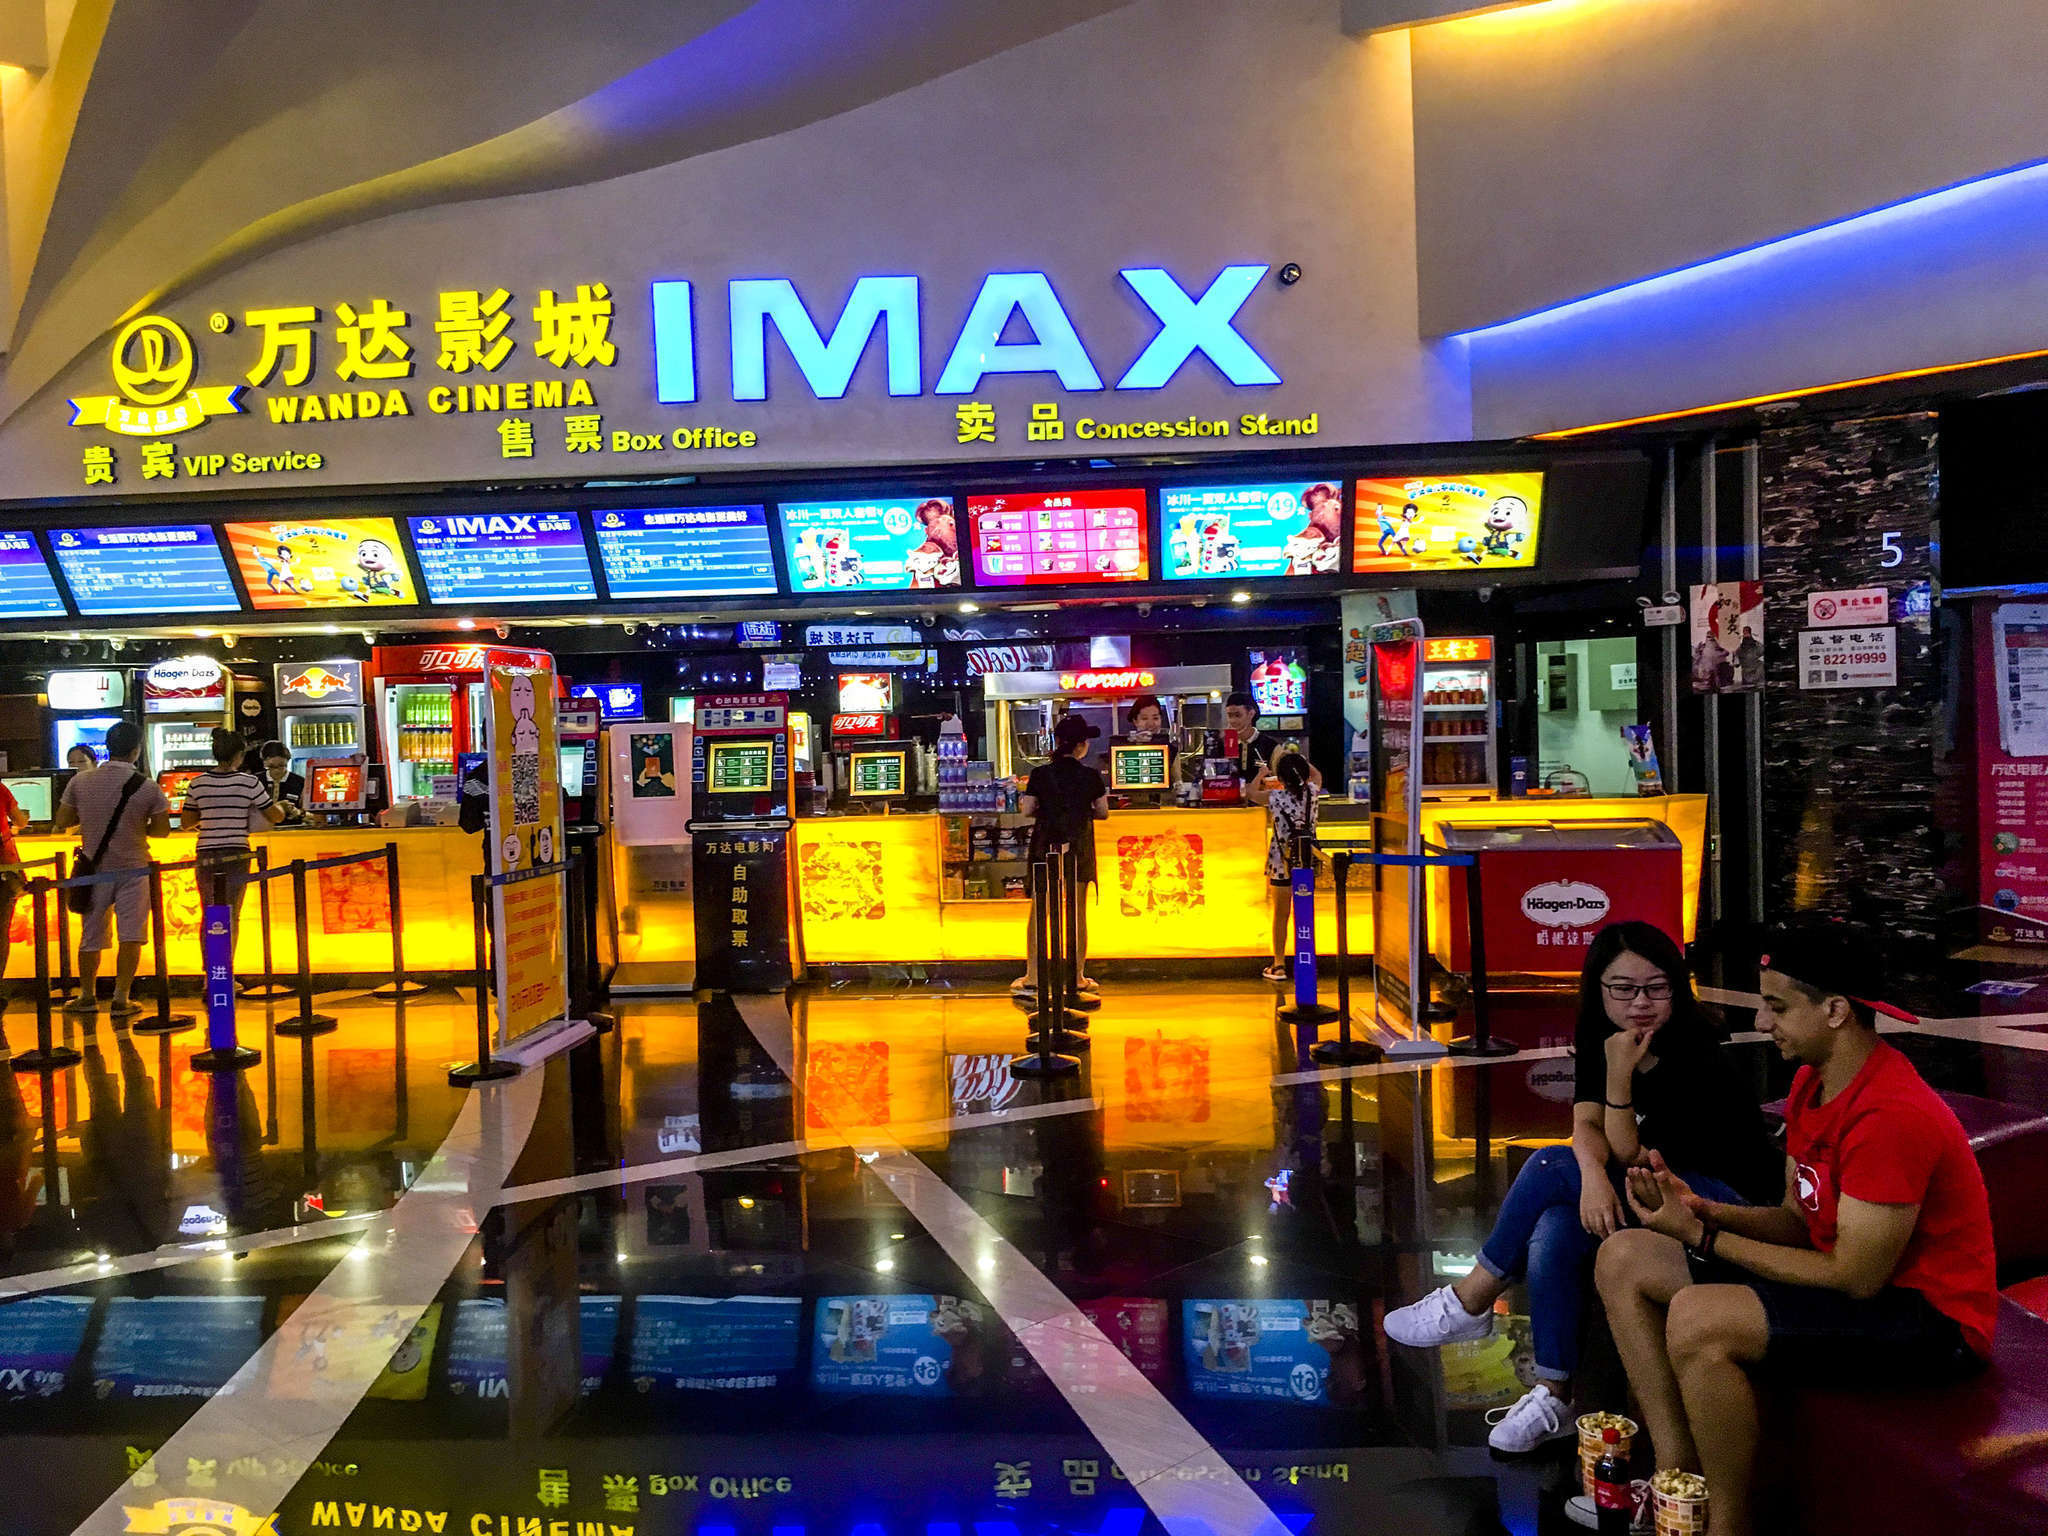 Global box office hit 38 6 billion last year but movie struggles in china slowed growth la times - Classement film box office ...